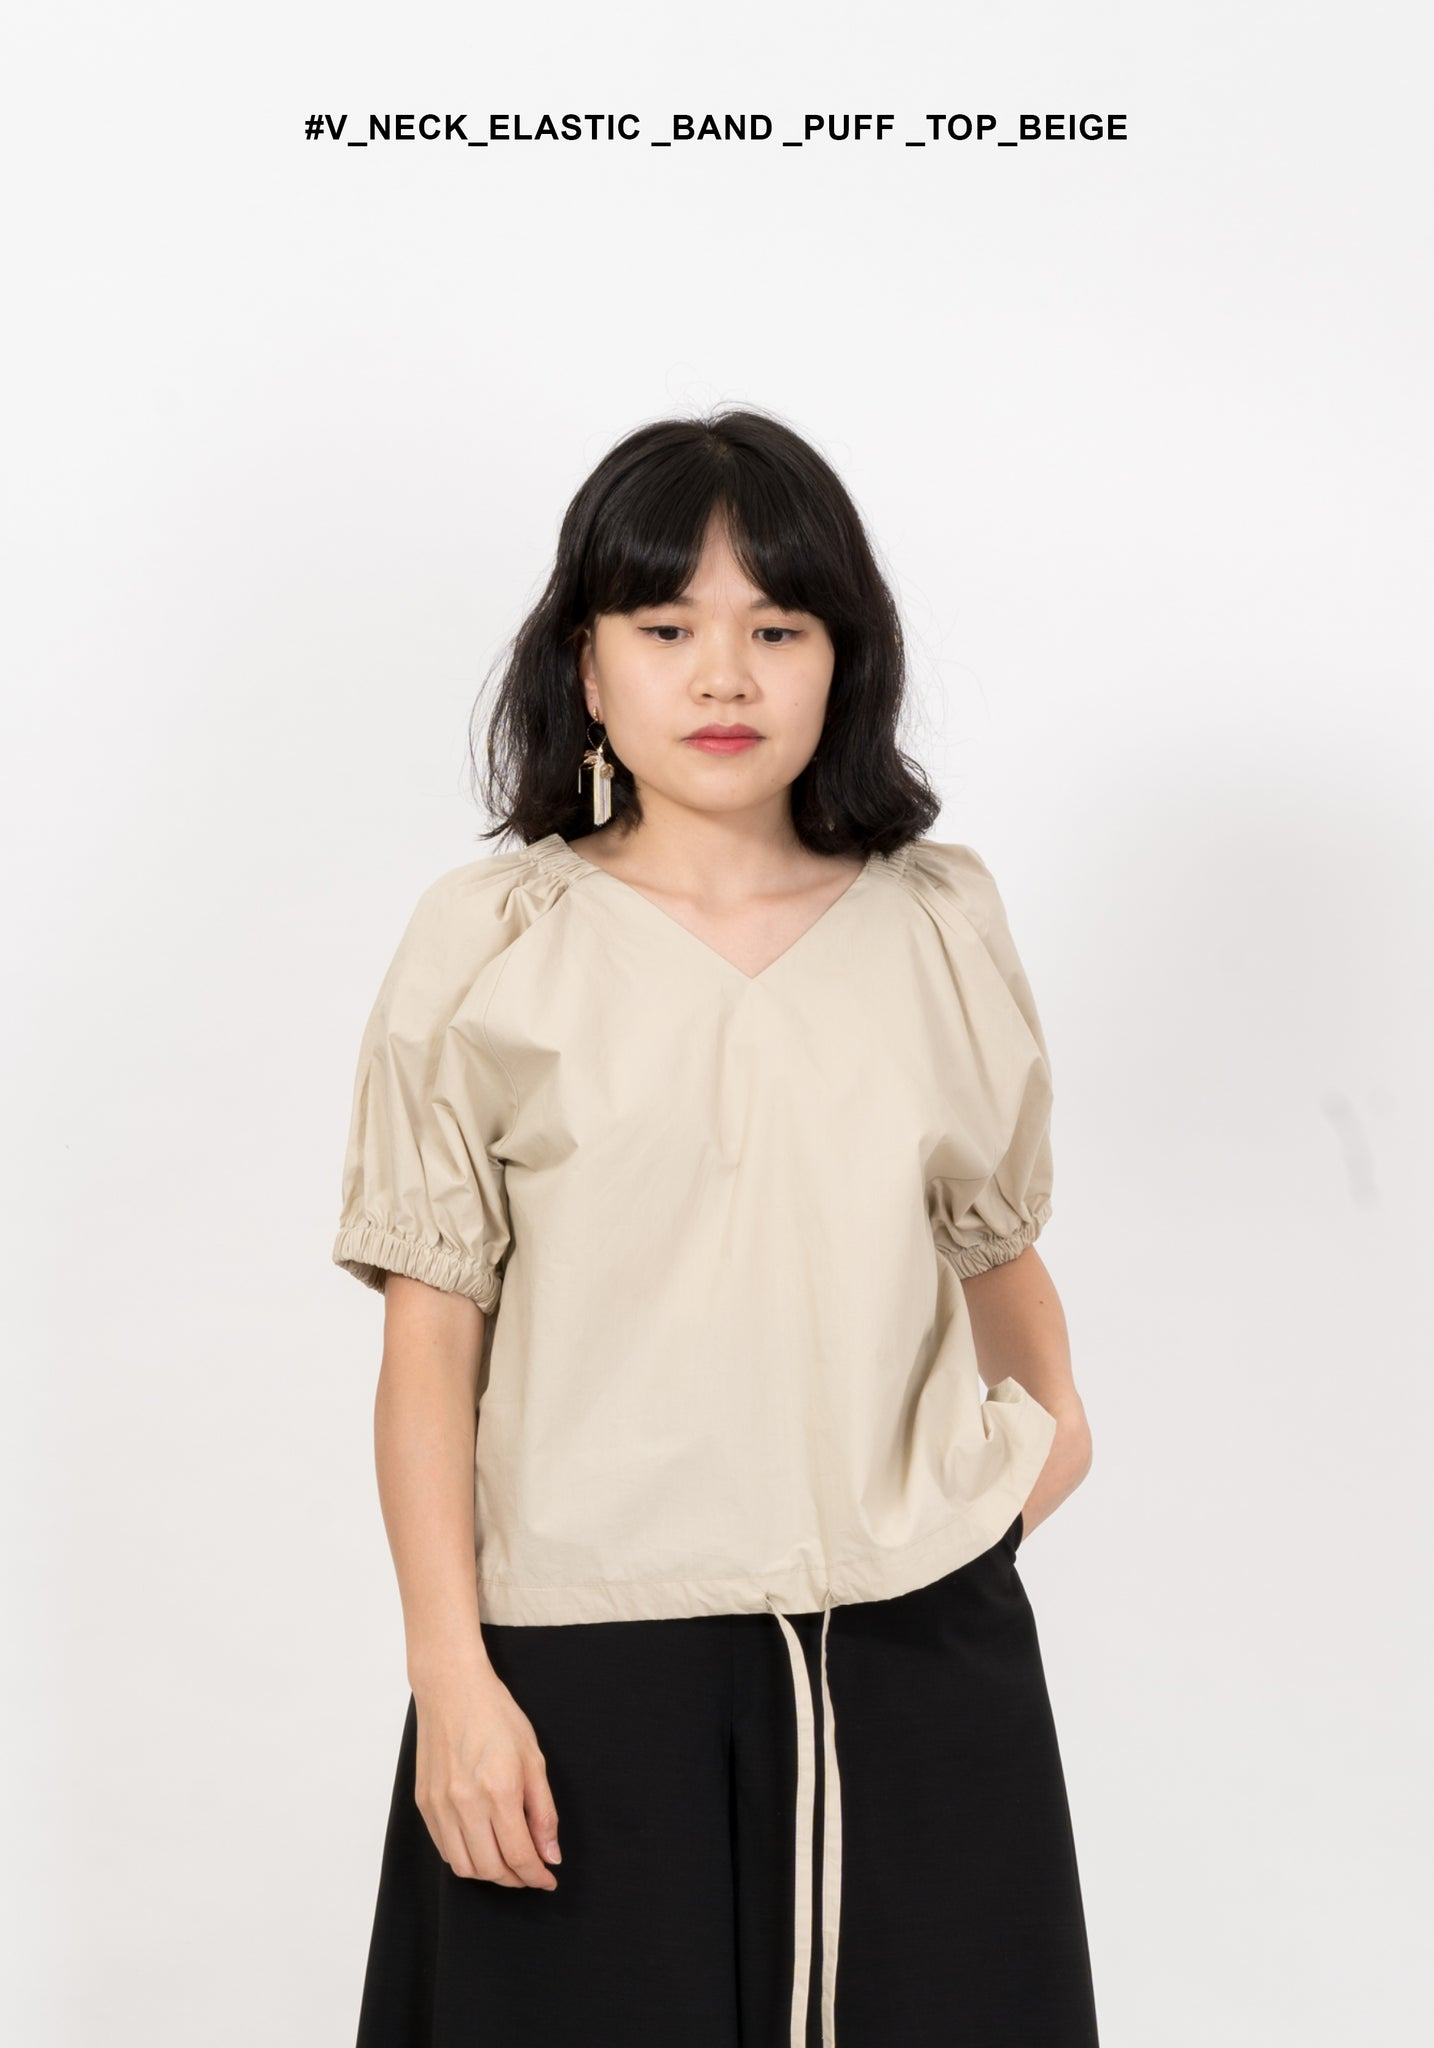 V Neck Elastic Band Puff Top Beige